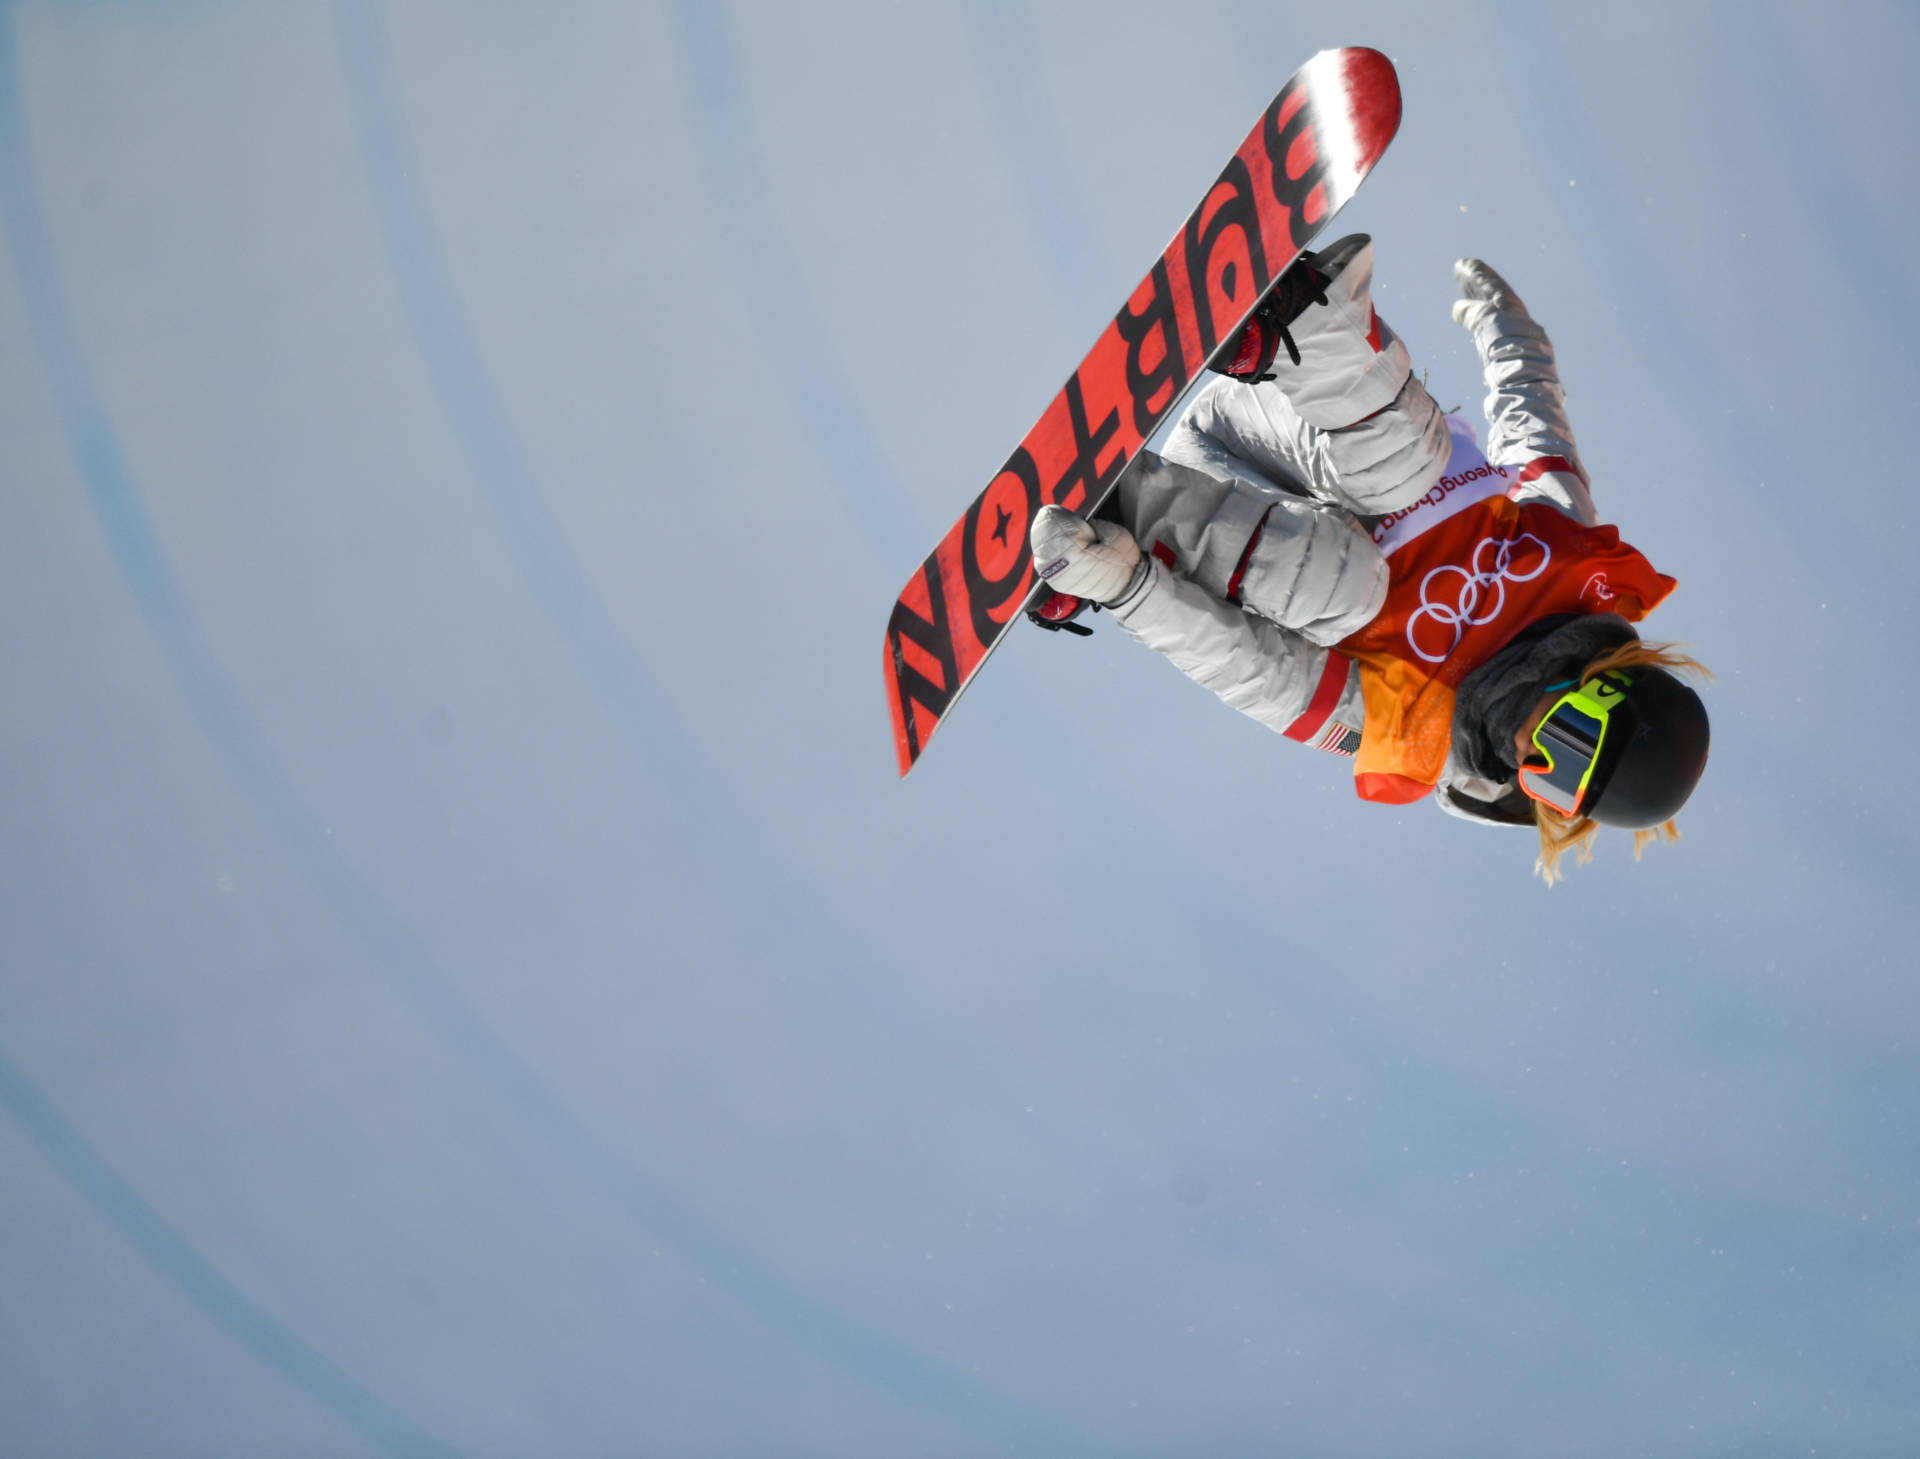 U.S. snowboarder Chloe Kim, 17, soars to a gold medal in the halfpipe. Ramsey Cardy/Sportsfile via Getty Images